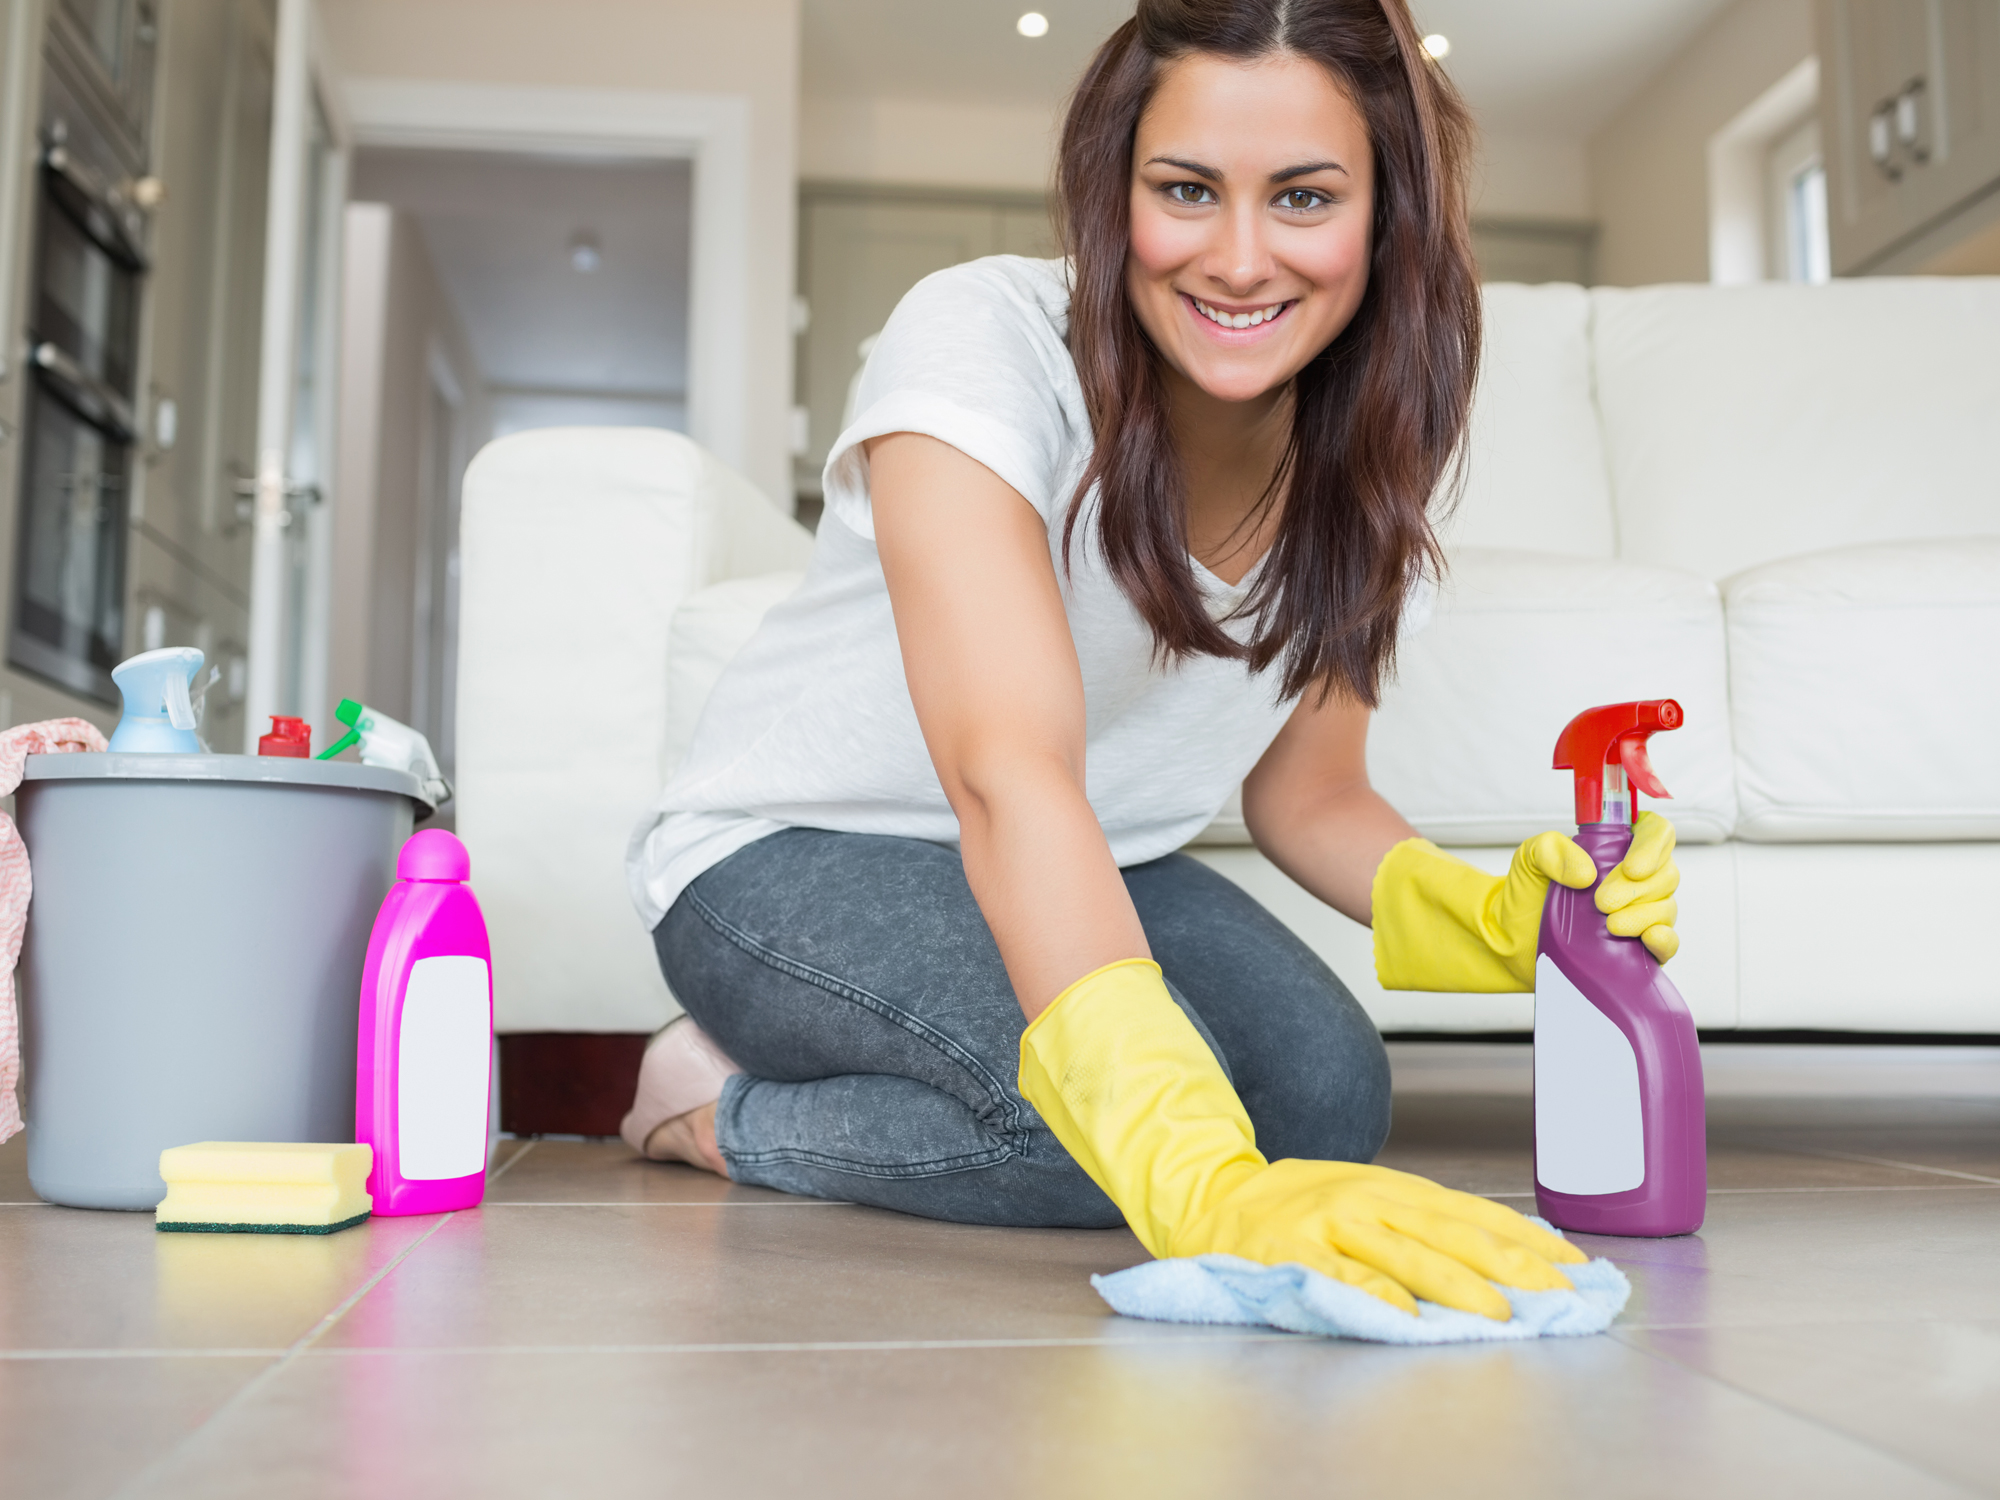 8 ways to rid your home of dust, dirt and toxins this spring